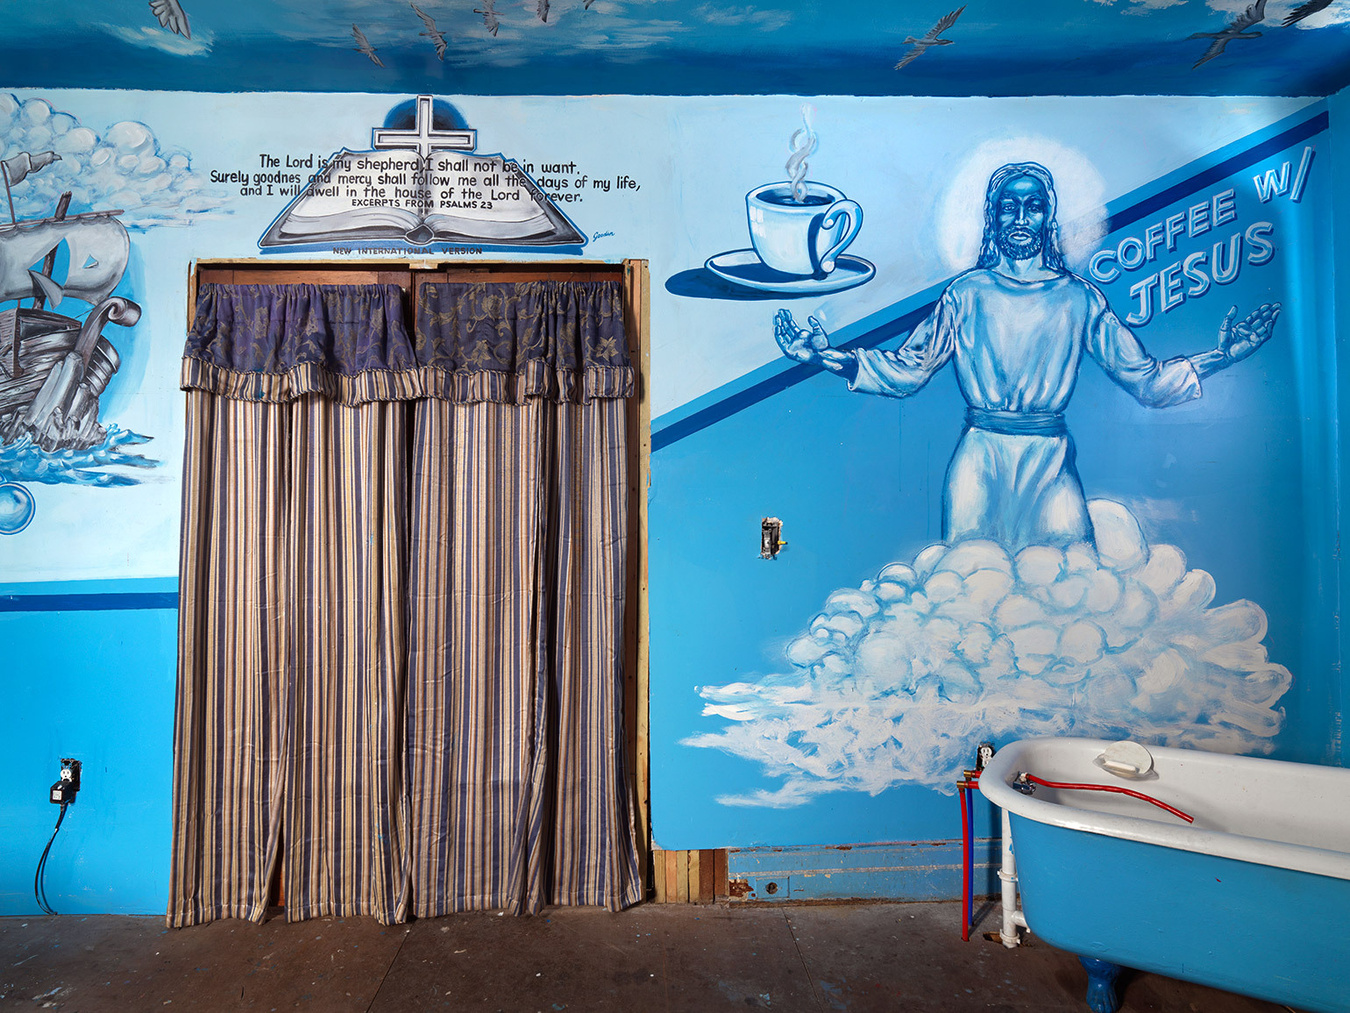 Coffee with Jesus, Kats's Bathroom, Eastside, Detroit 2015